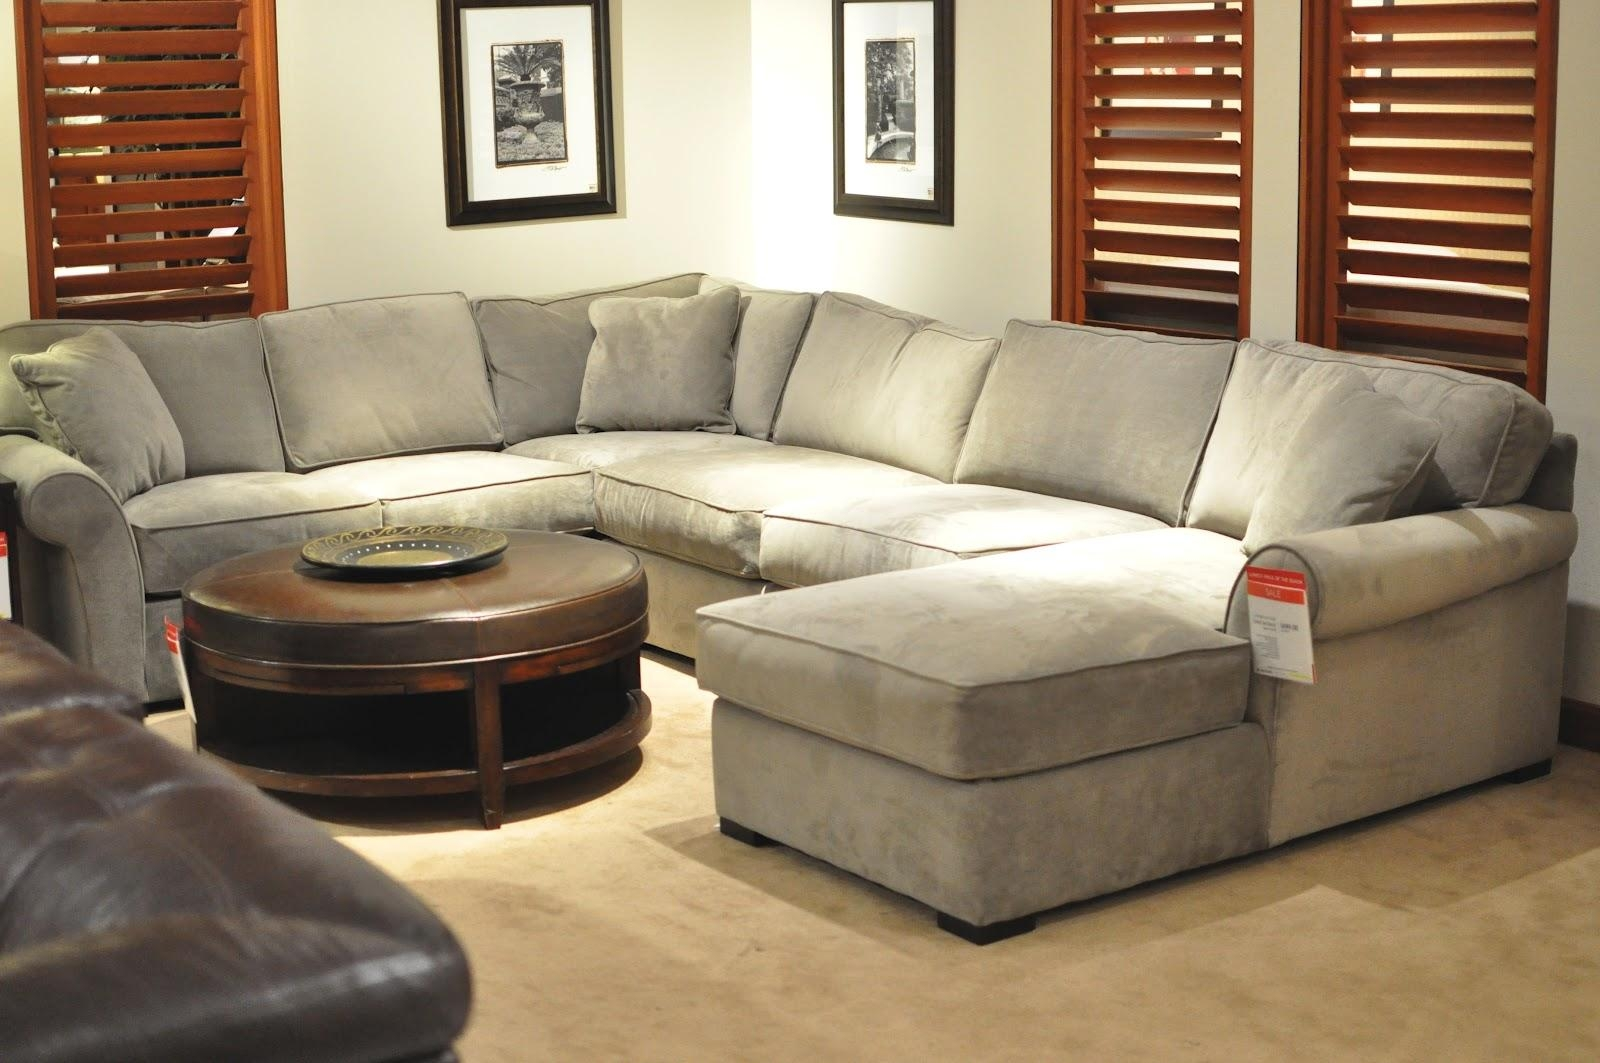 good quality sectional sofas retro sofa bed melbourne high leather perfect elegance